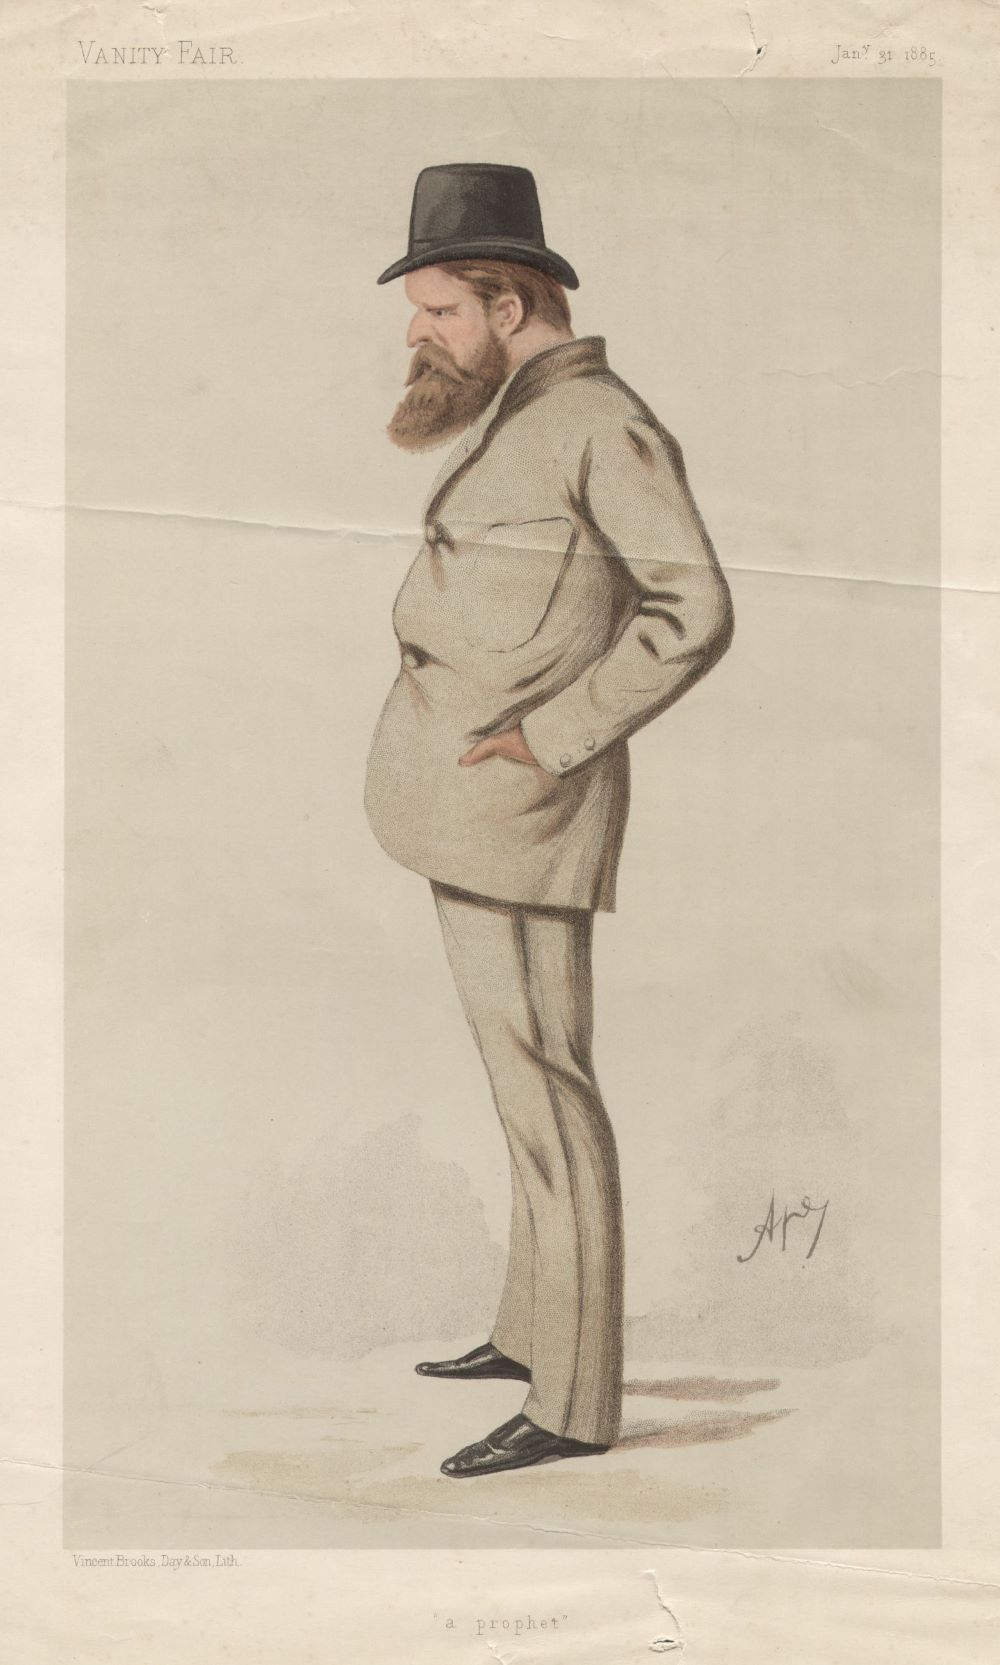 Caricature of Blunt in Vanity Fair Magazine, signed by Ape. Colour image a middle aged man with a moustache and beard, wearing a light coloured suit, smart shoes and a hat.